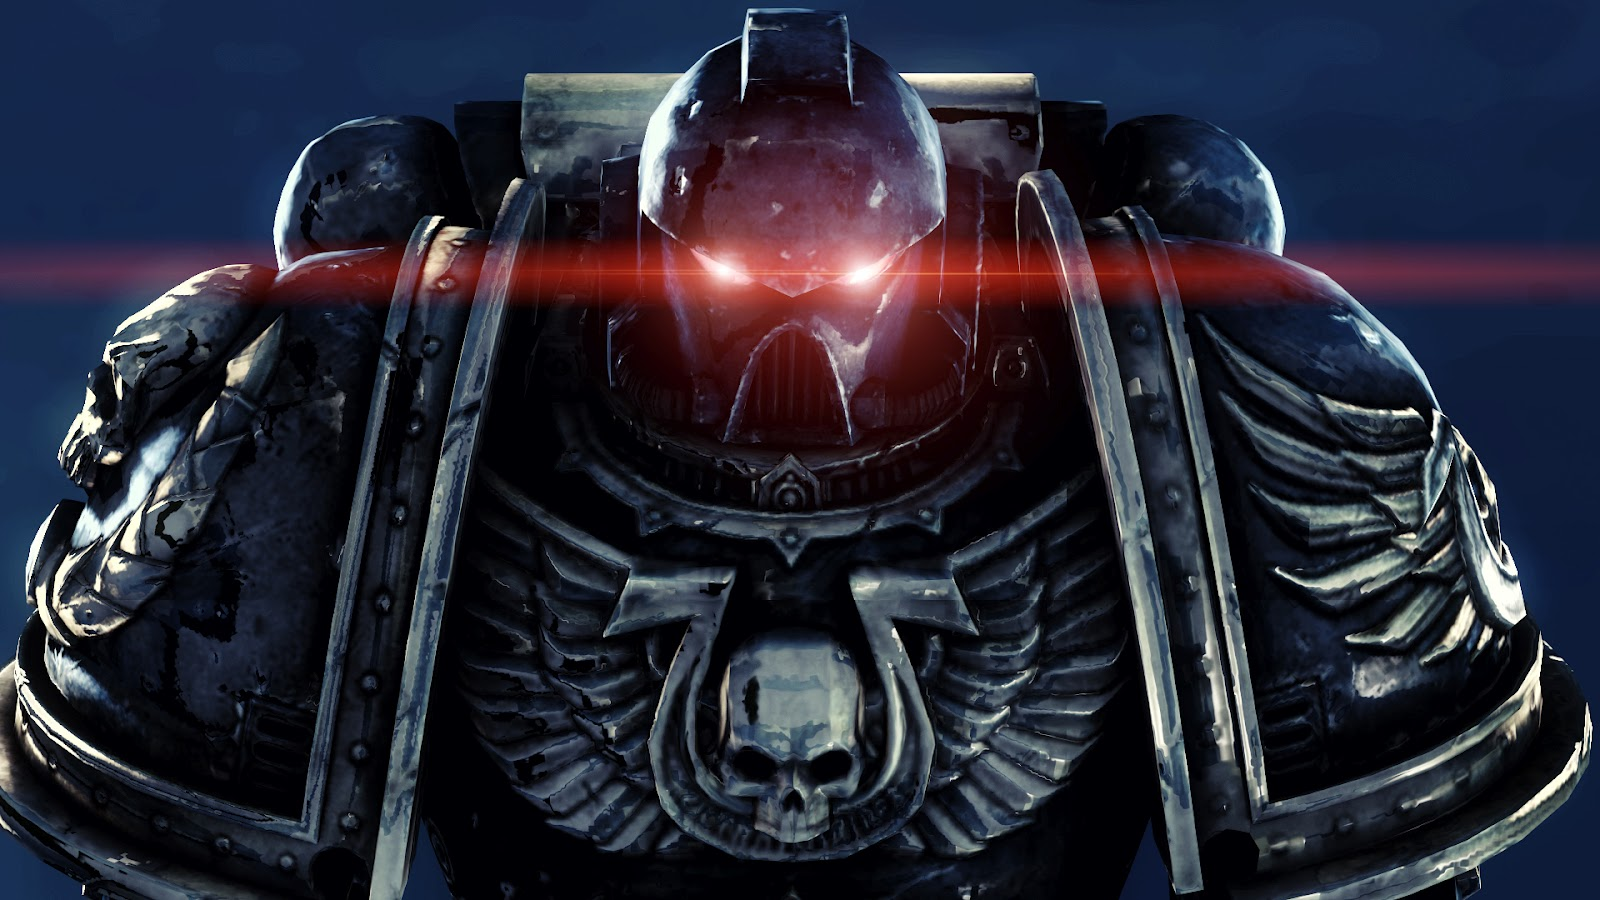 warhammer space marine game wallpapers - 2 Warhammer 40,000 Space Marine HD Wallpapers